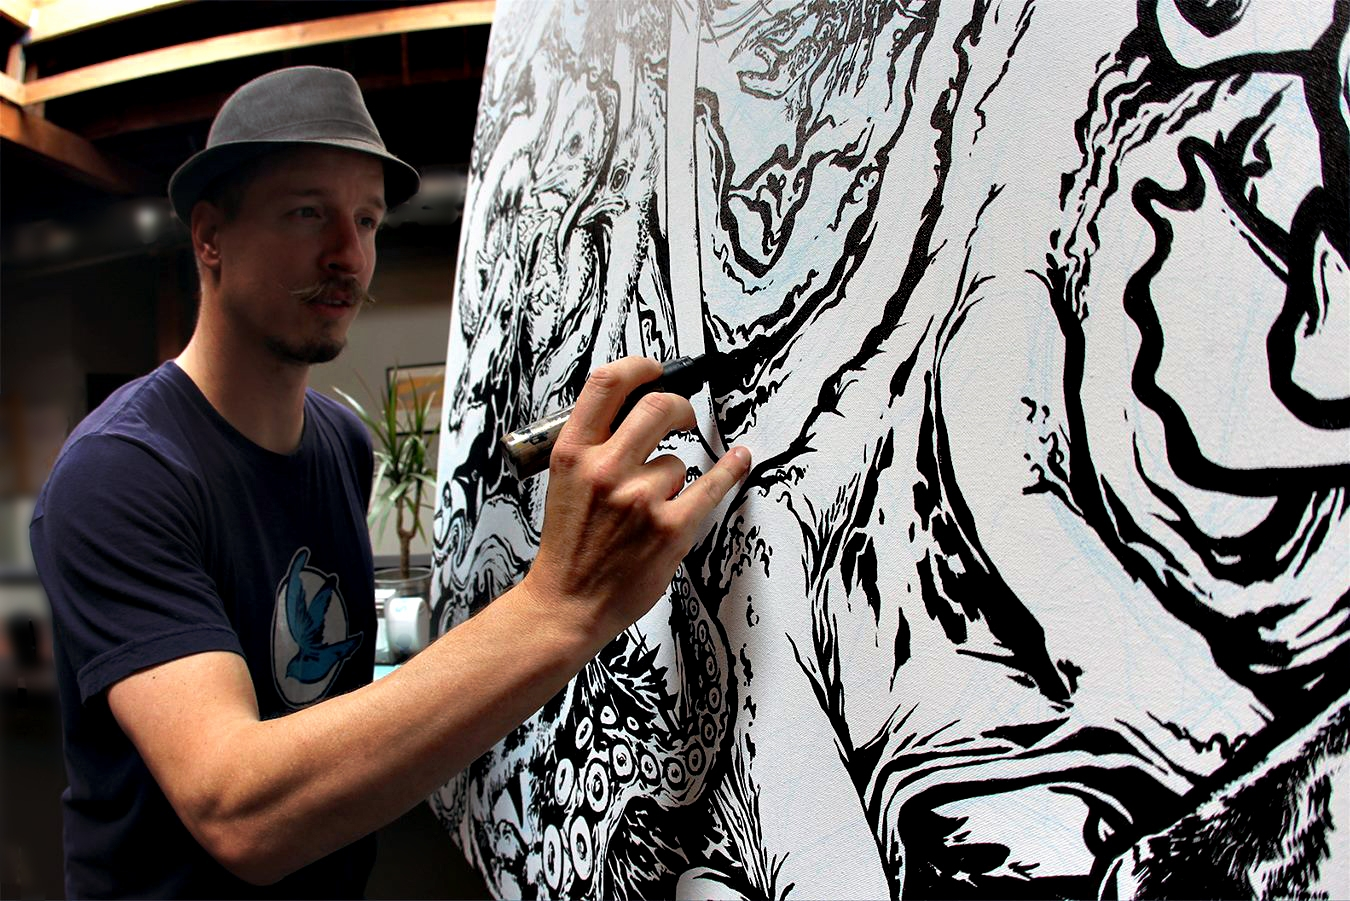 Founder of the Planet Labs Artist in Residence program, Forest Stearns creating the first art show in space one painting at a time. PC:Planet